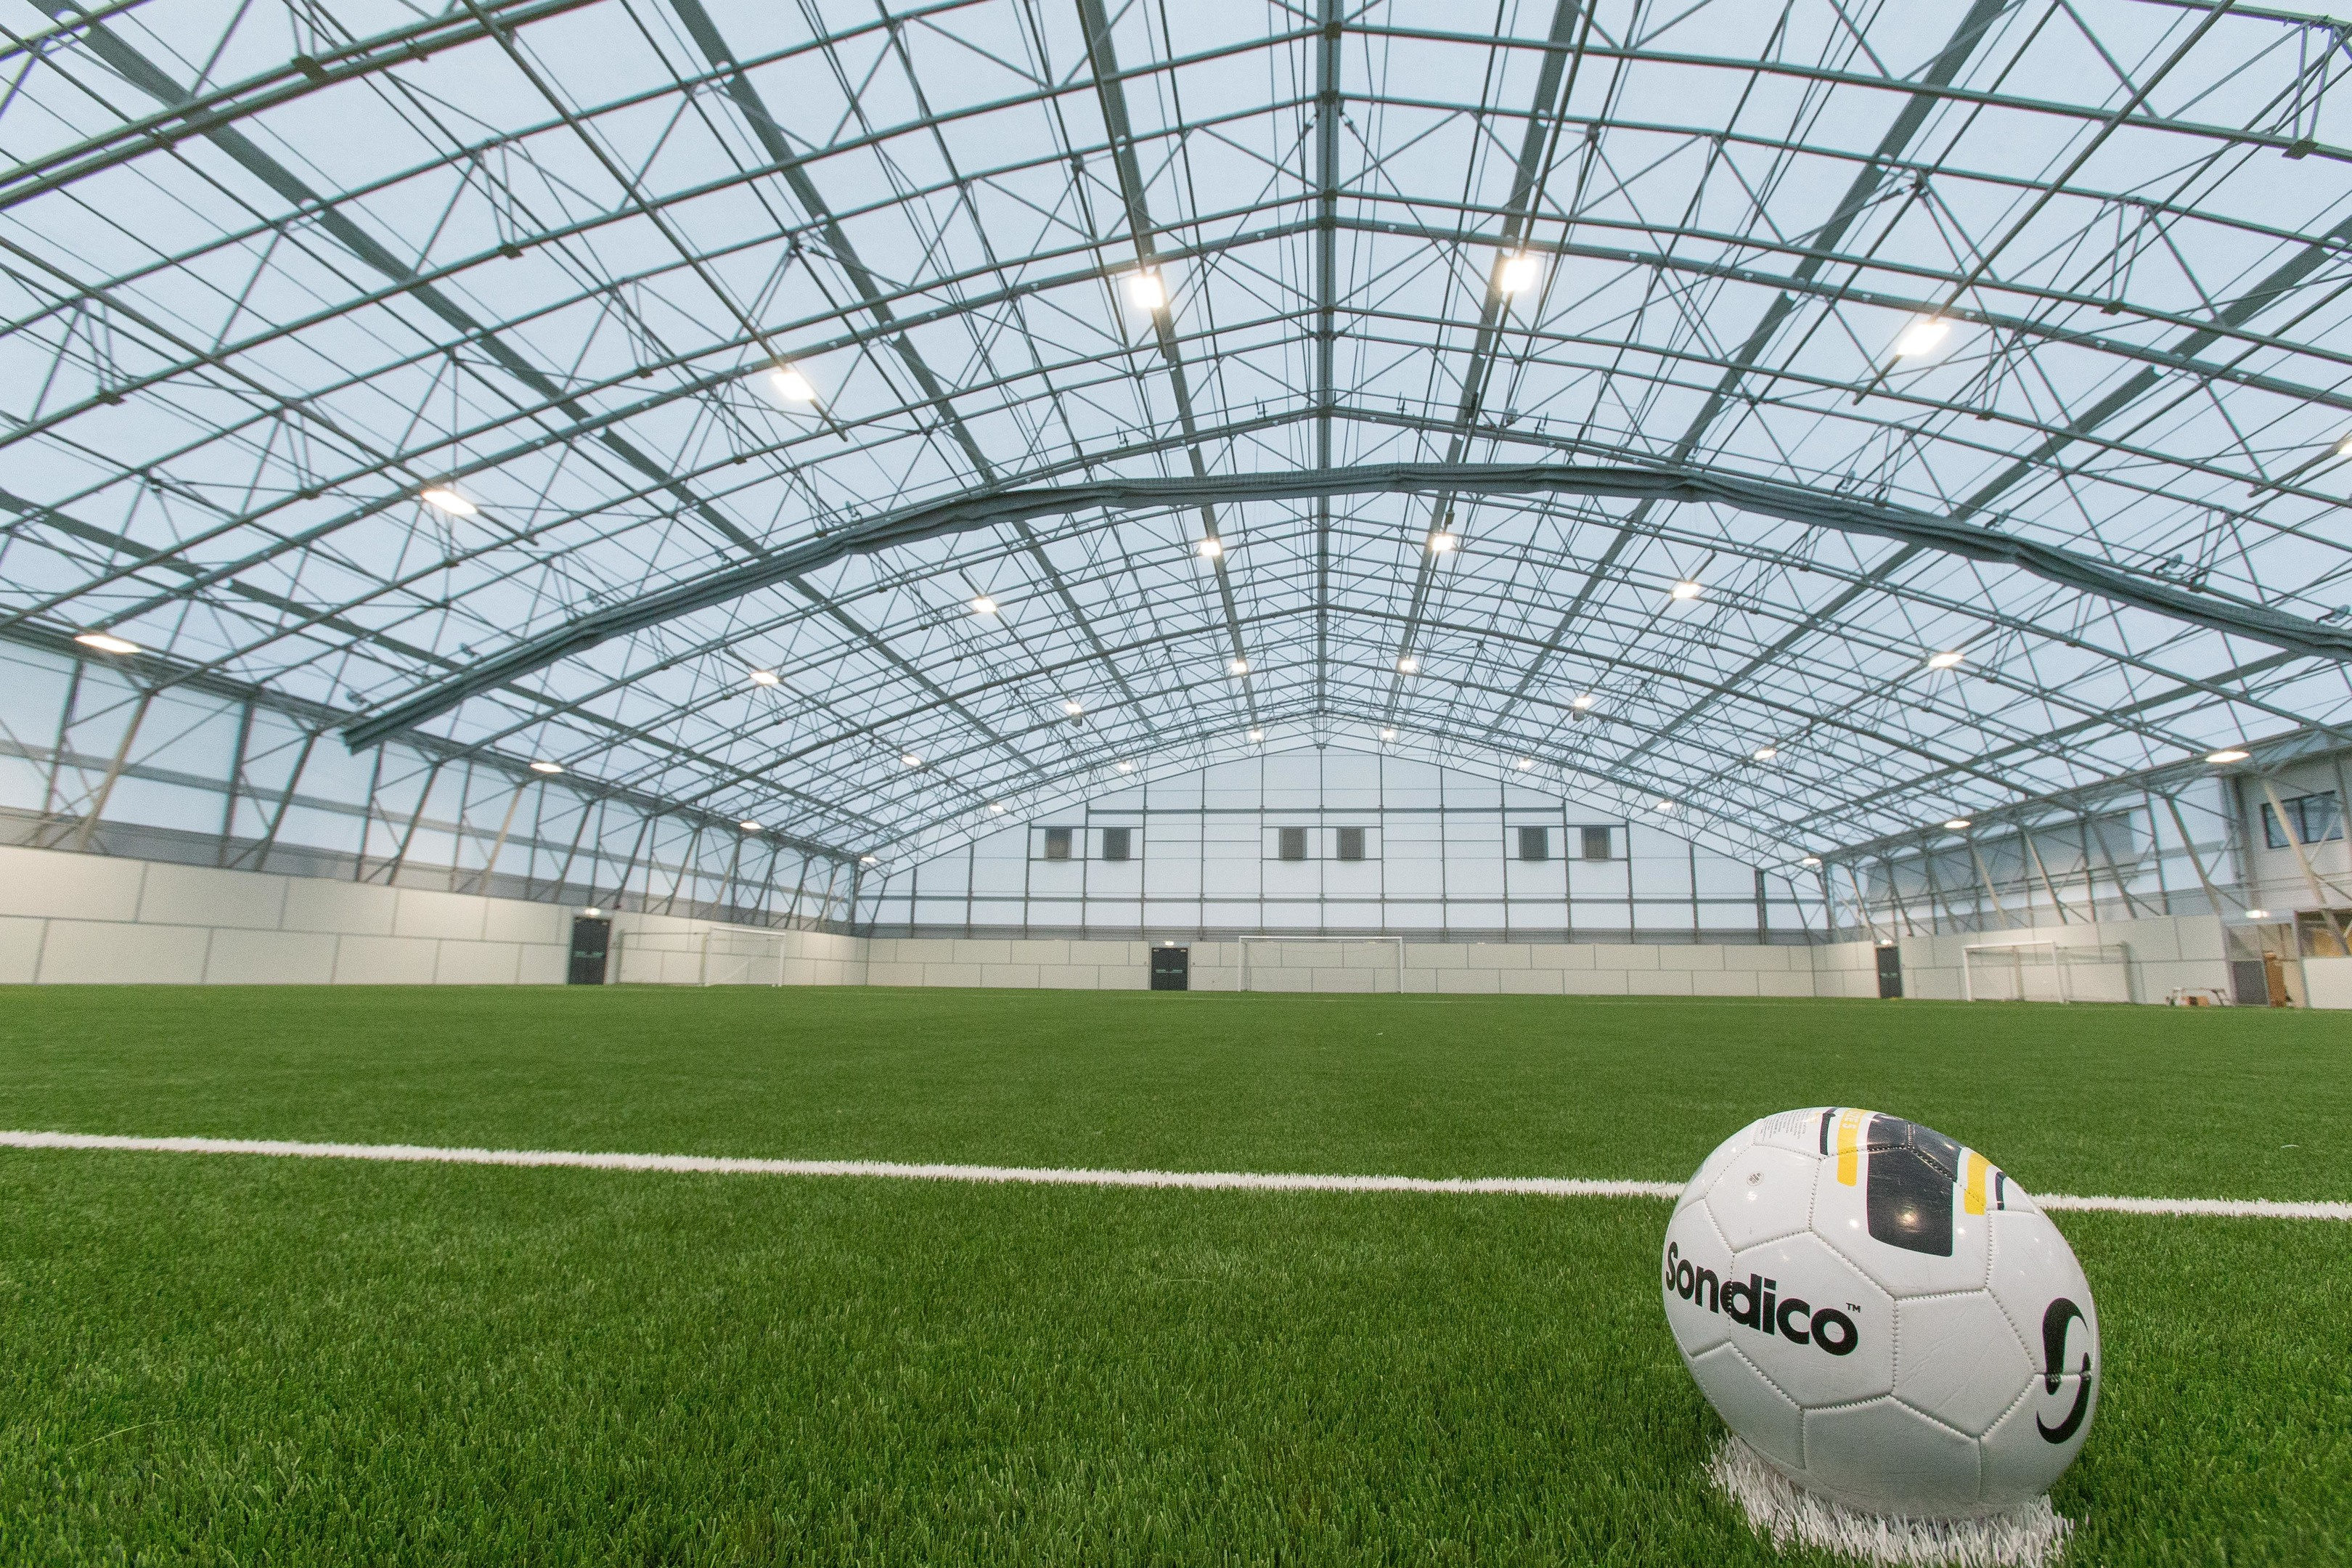 Courier News - Fife - Jonathan Watson - New Indoor Football Pitch at Michael Woods Sports Centre nearing completion. - Glenrothes - Picture Shows: Interior of the vast new Indoor Football Pitch at Michael Woods Sports Centre in Glenrothes. - Wednesday 20 December 2017